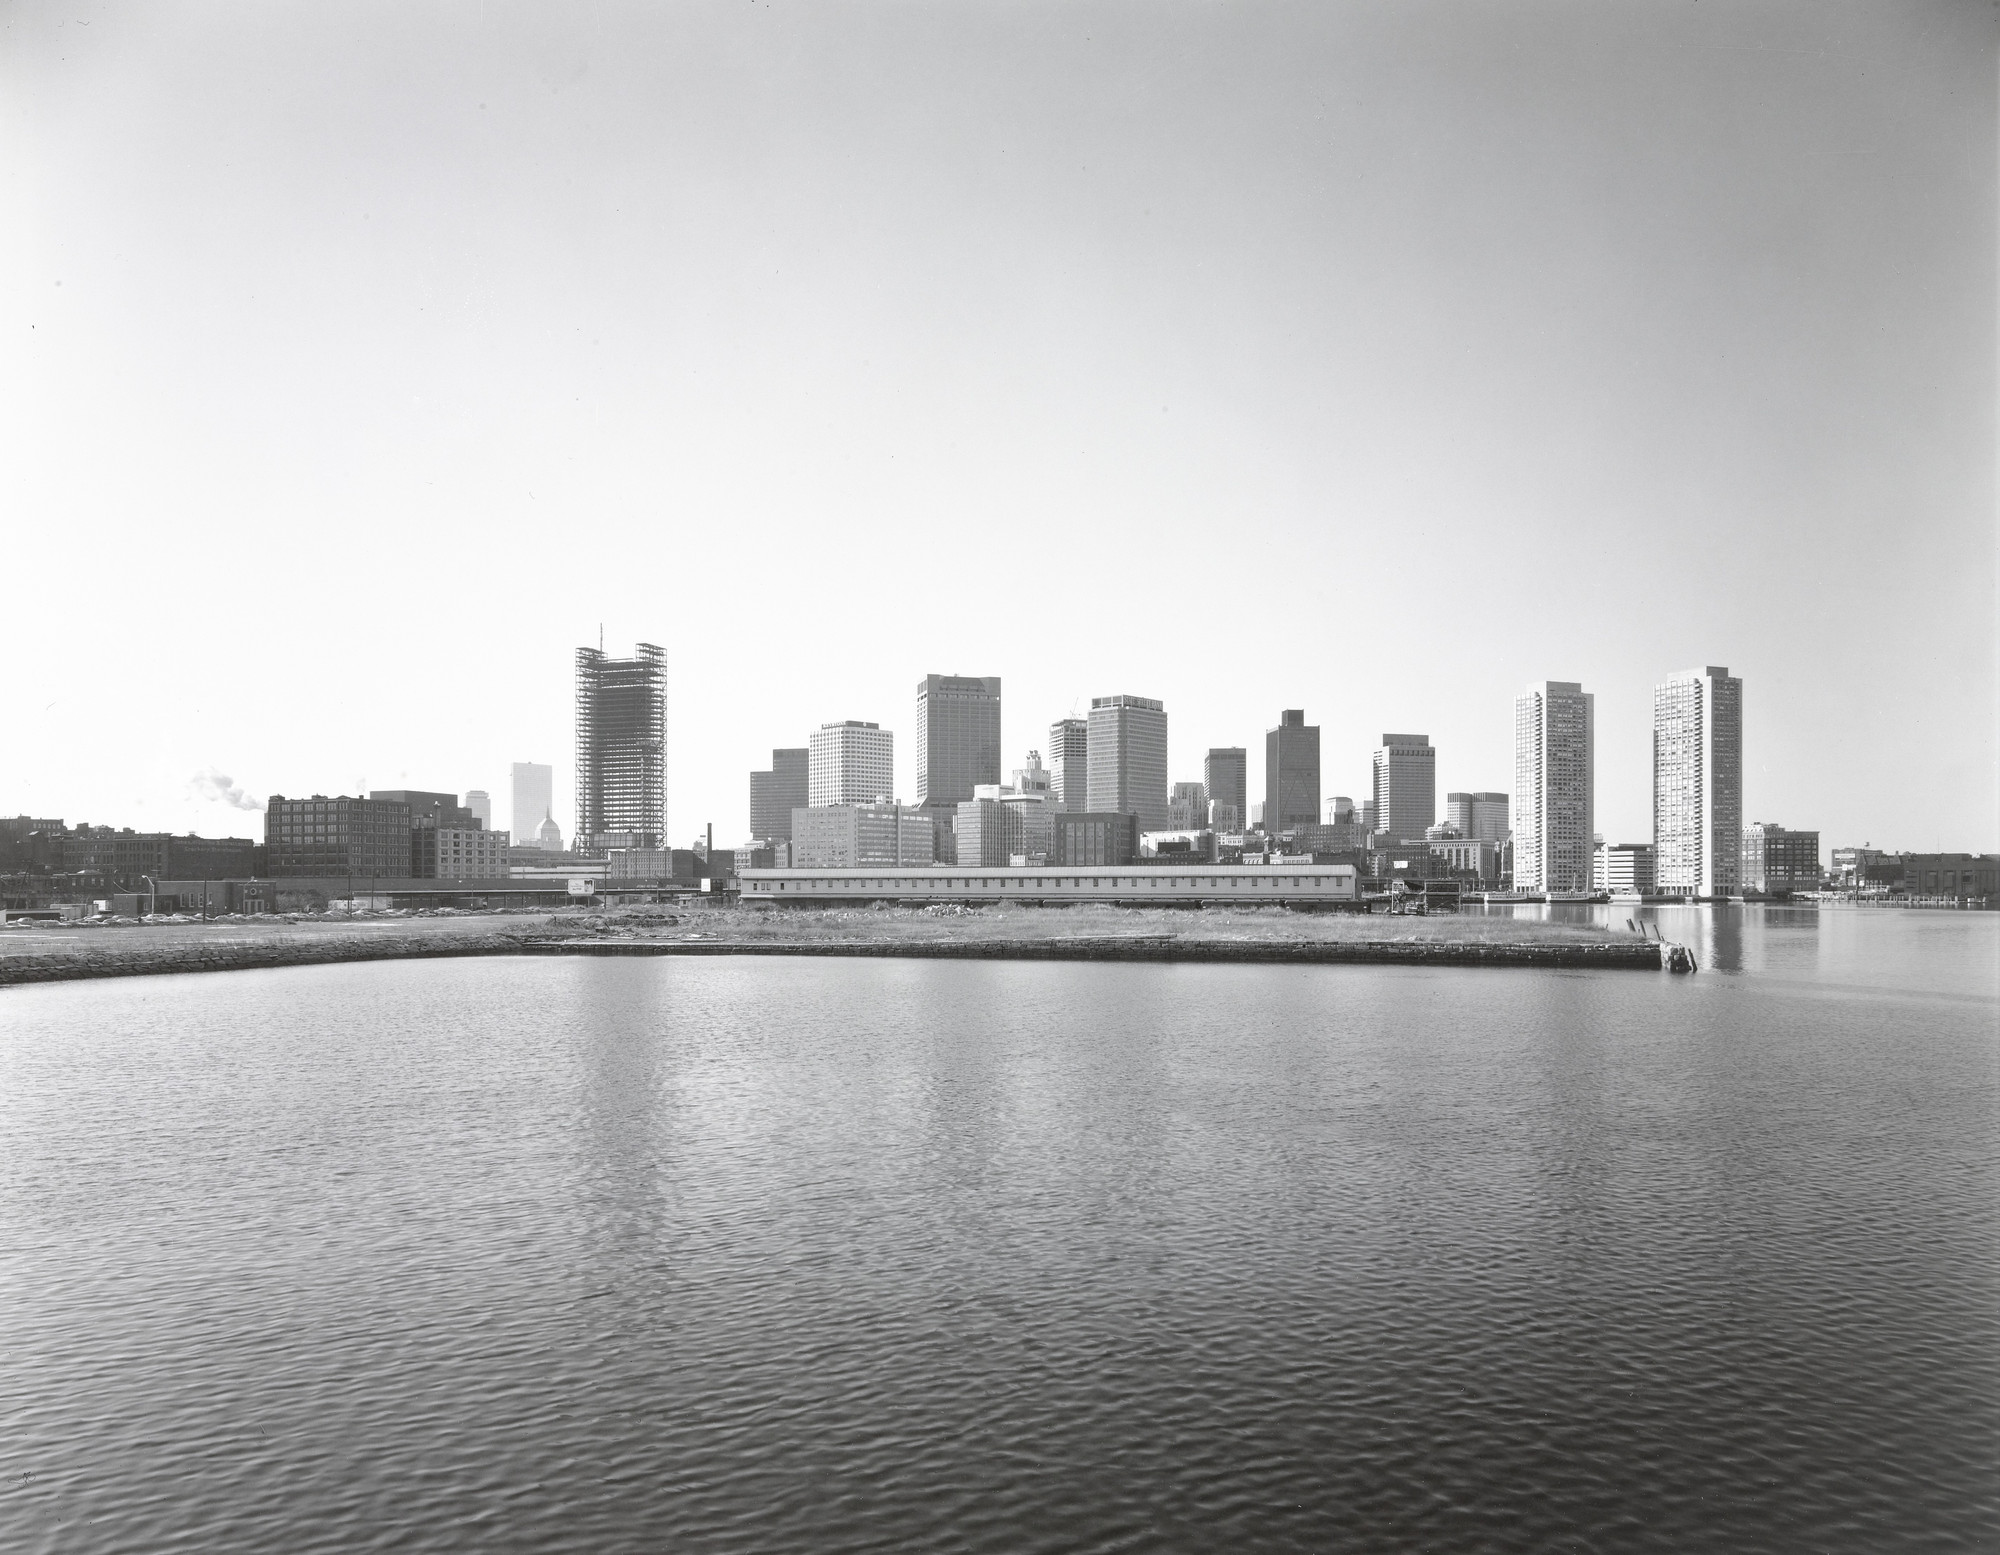 Nicholas Nixon. View of Boston from Pier 4. 1975